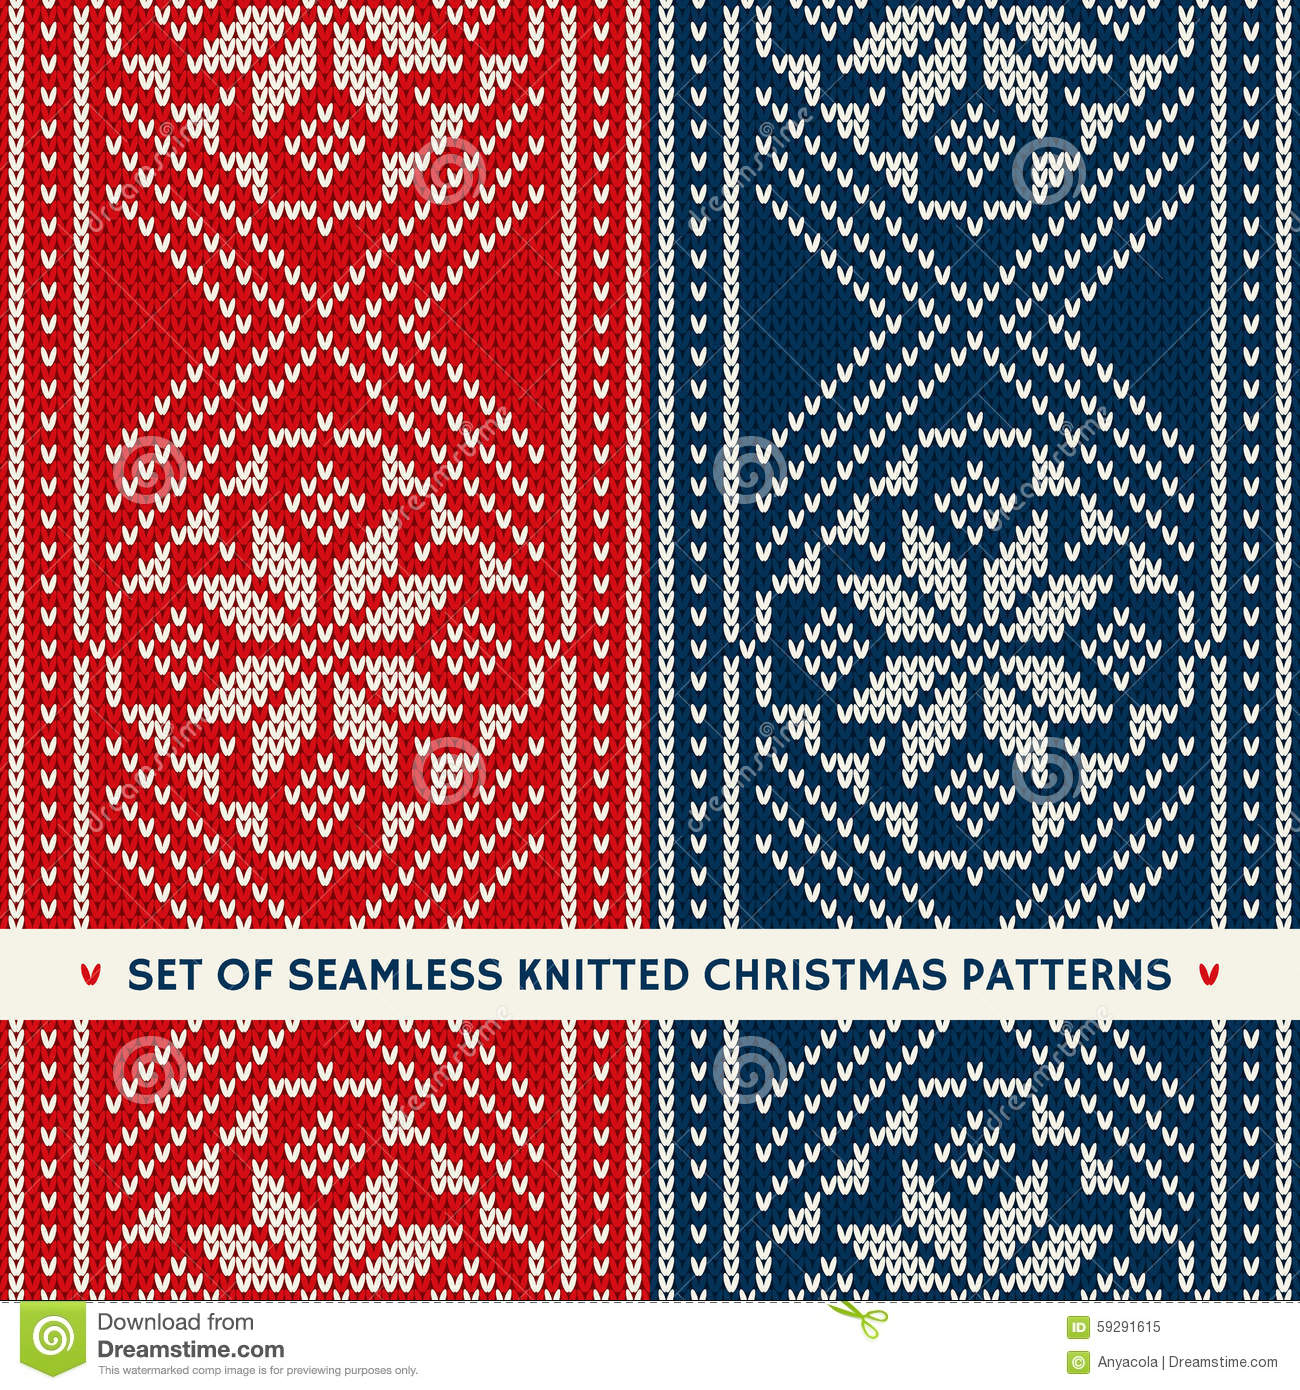 Set of 2 winter holiday seamless knitting patterns christmas an set of 2 winter holiday seamless knitting patterns christmas an bankloansurffo Images